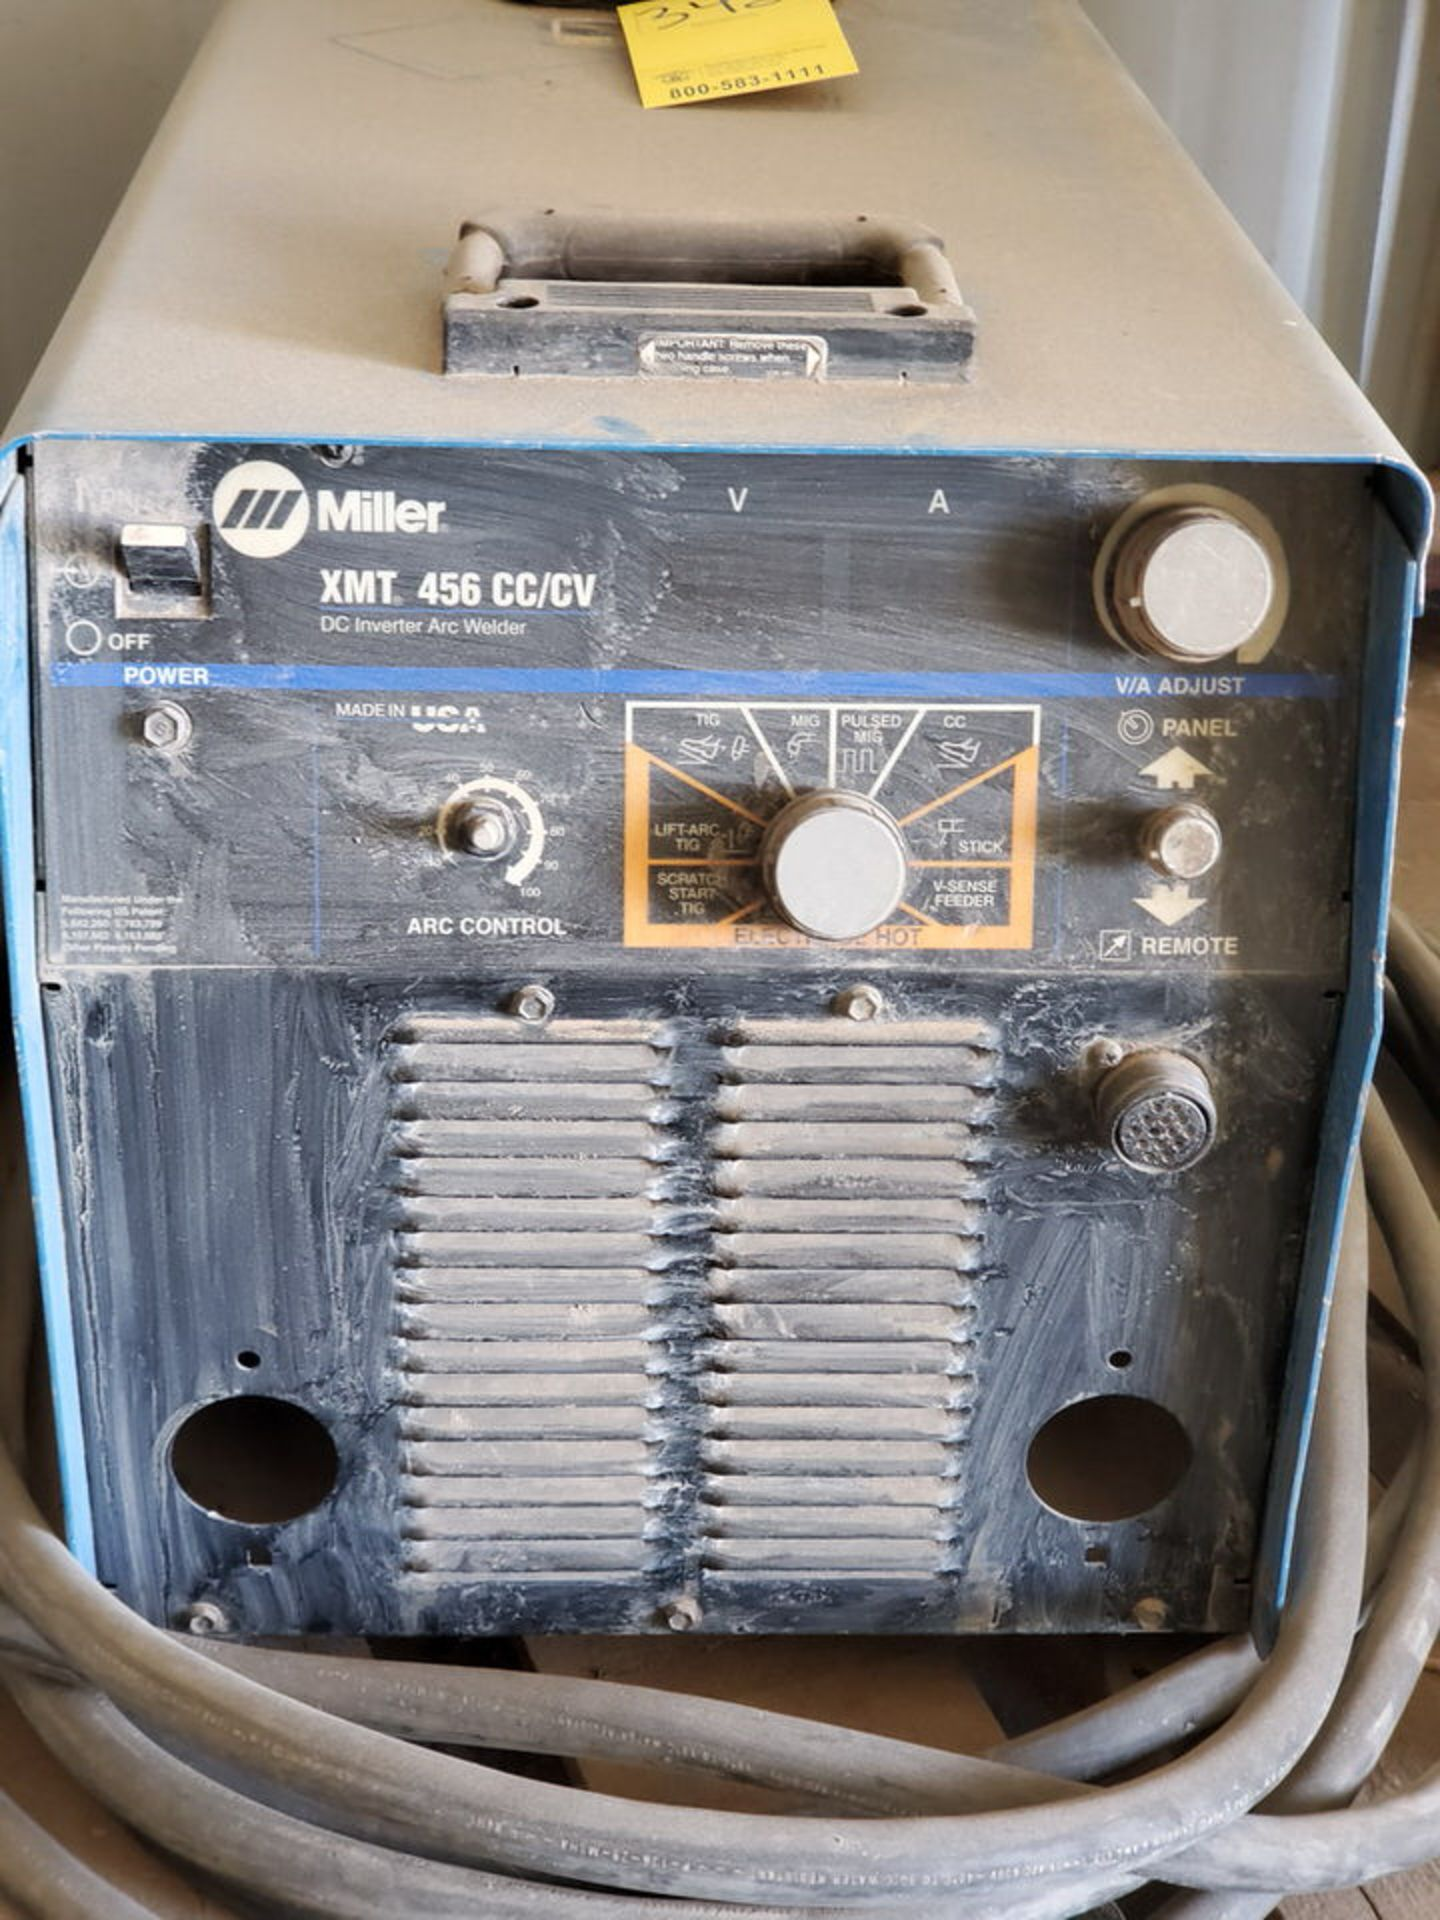 Miller XMT 456 Multiprocessing Welder 230/460V, 50.8/27.8A, 3PH, 60HZ - Image 3 of 5